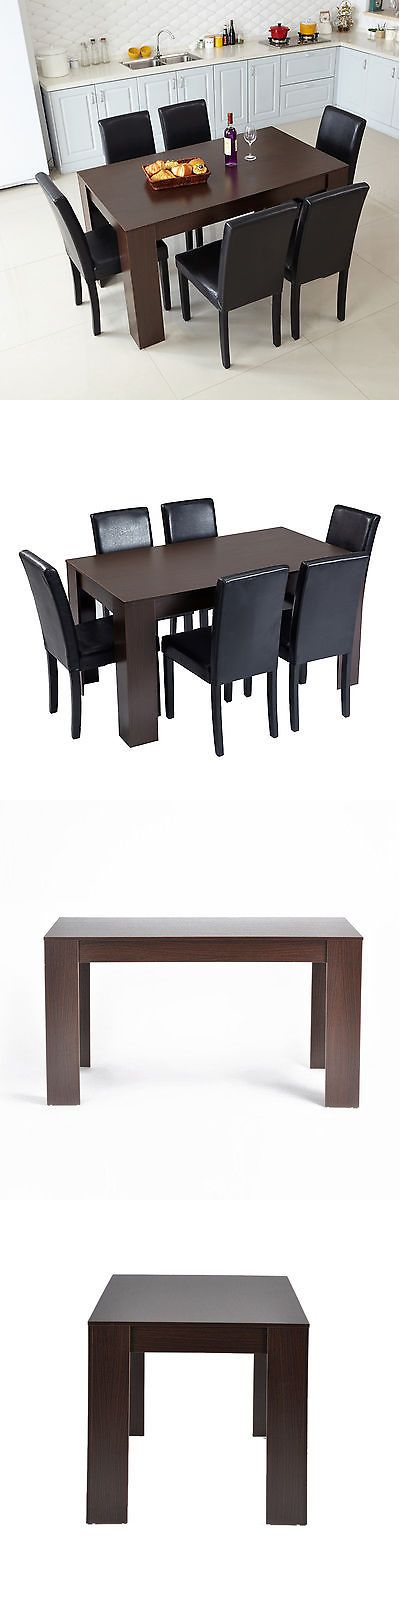 Dining Sets 107578: Wooden Dining Table Walnut Colour Dining Room Home Furniture Kitchen Table -> BUY IT NOW ONLY: $99.99 on eBay!